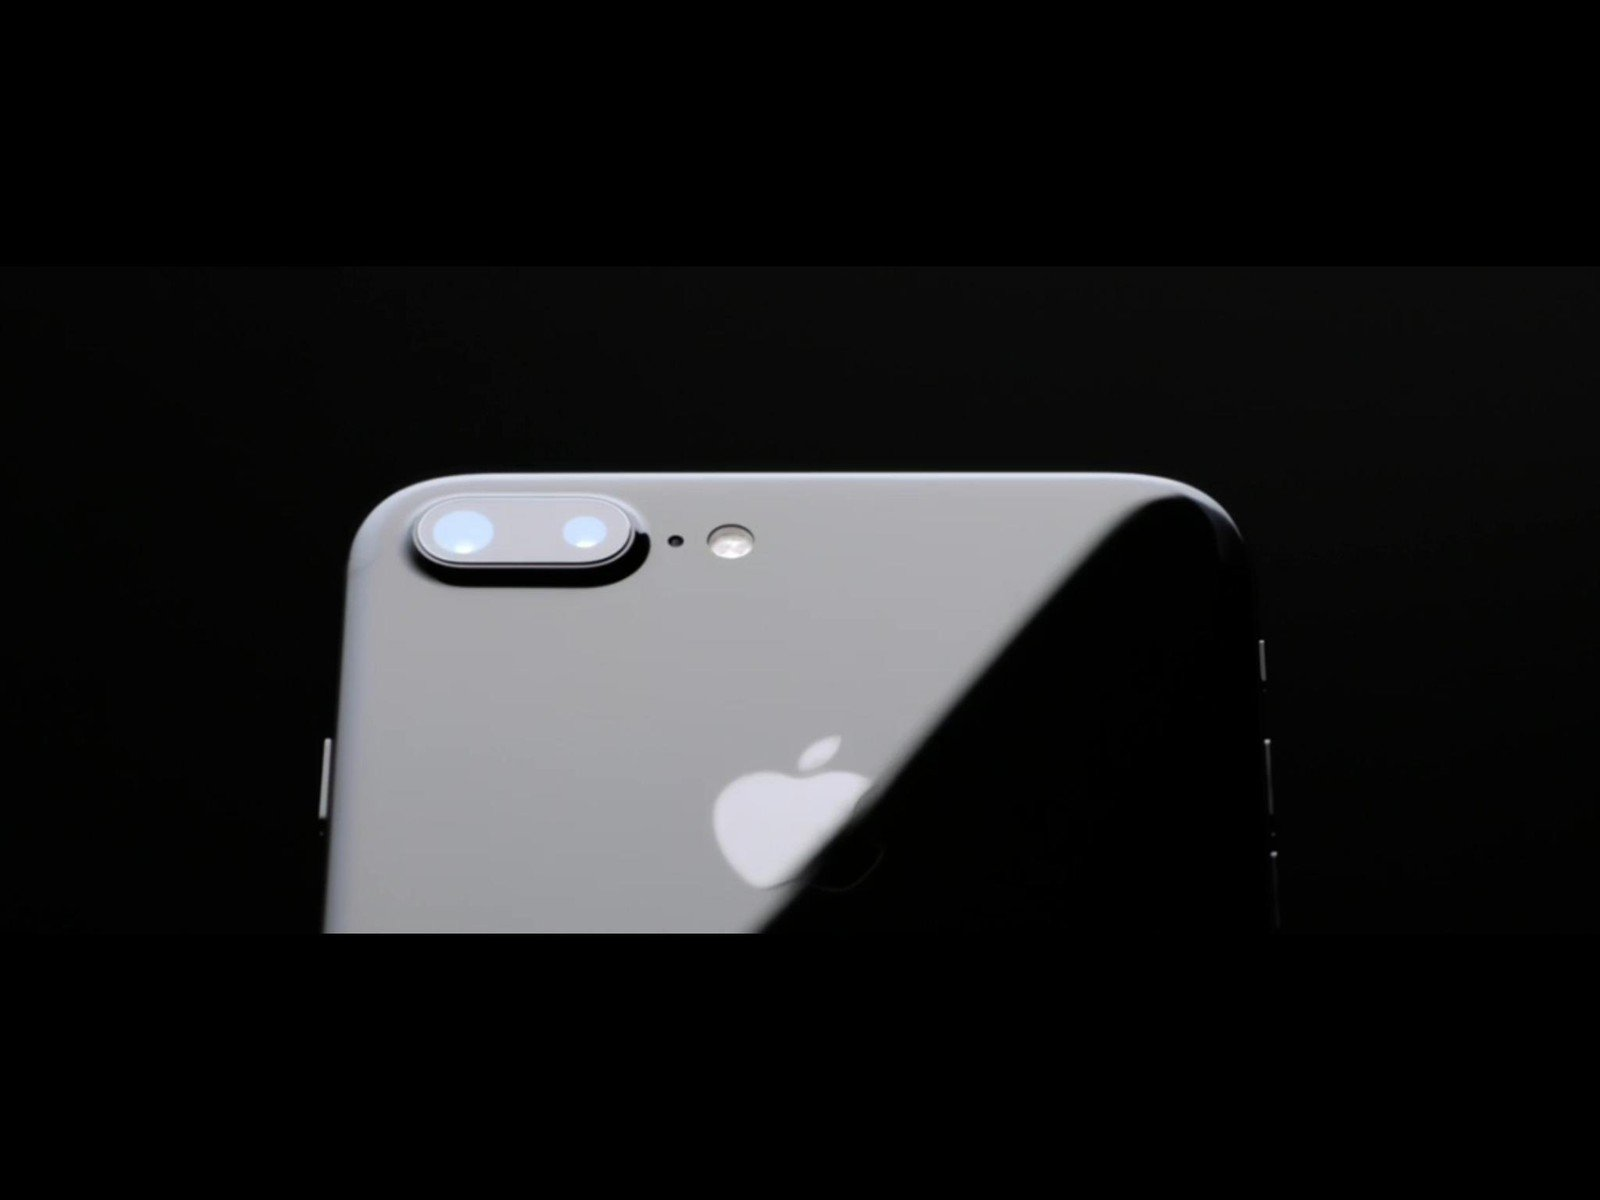 iphone-7-design-05-copy